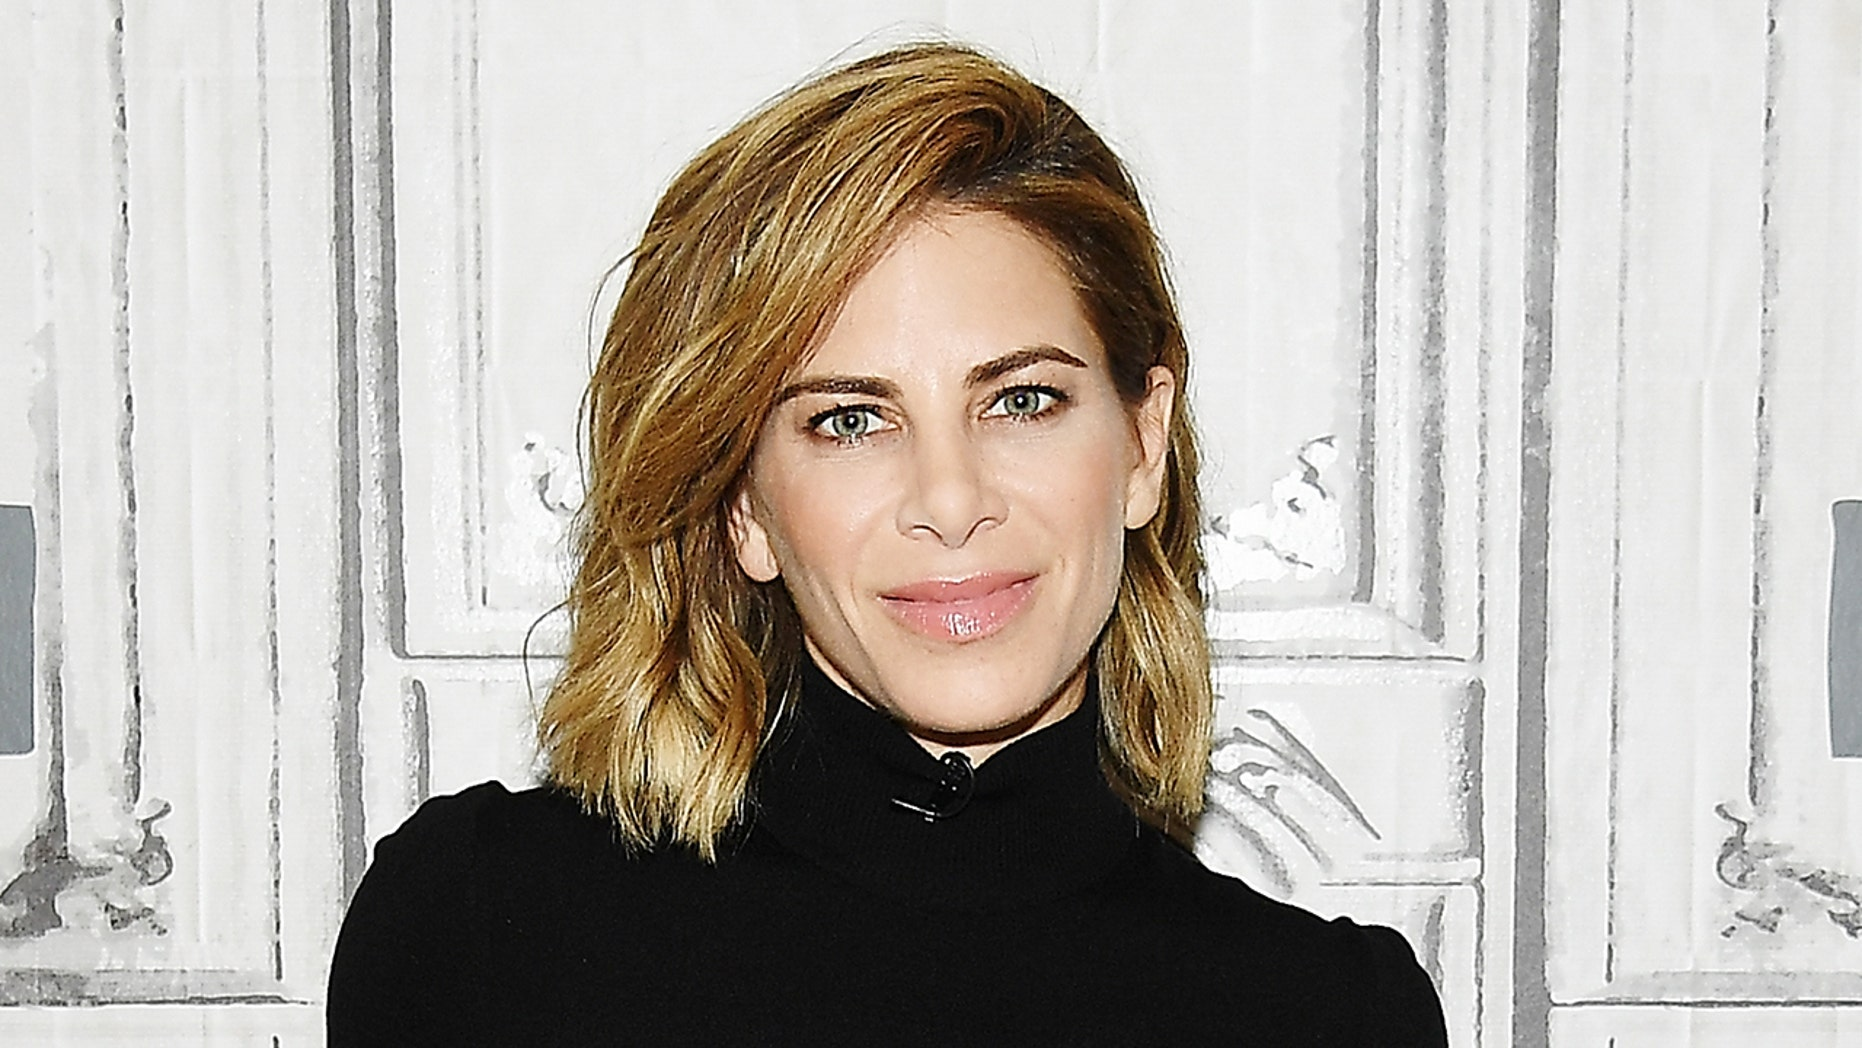 Jillian Michaels urged people to avoid the keto diet that has become a growing trend in recent years.